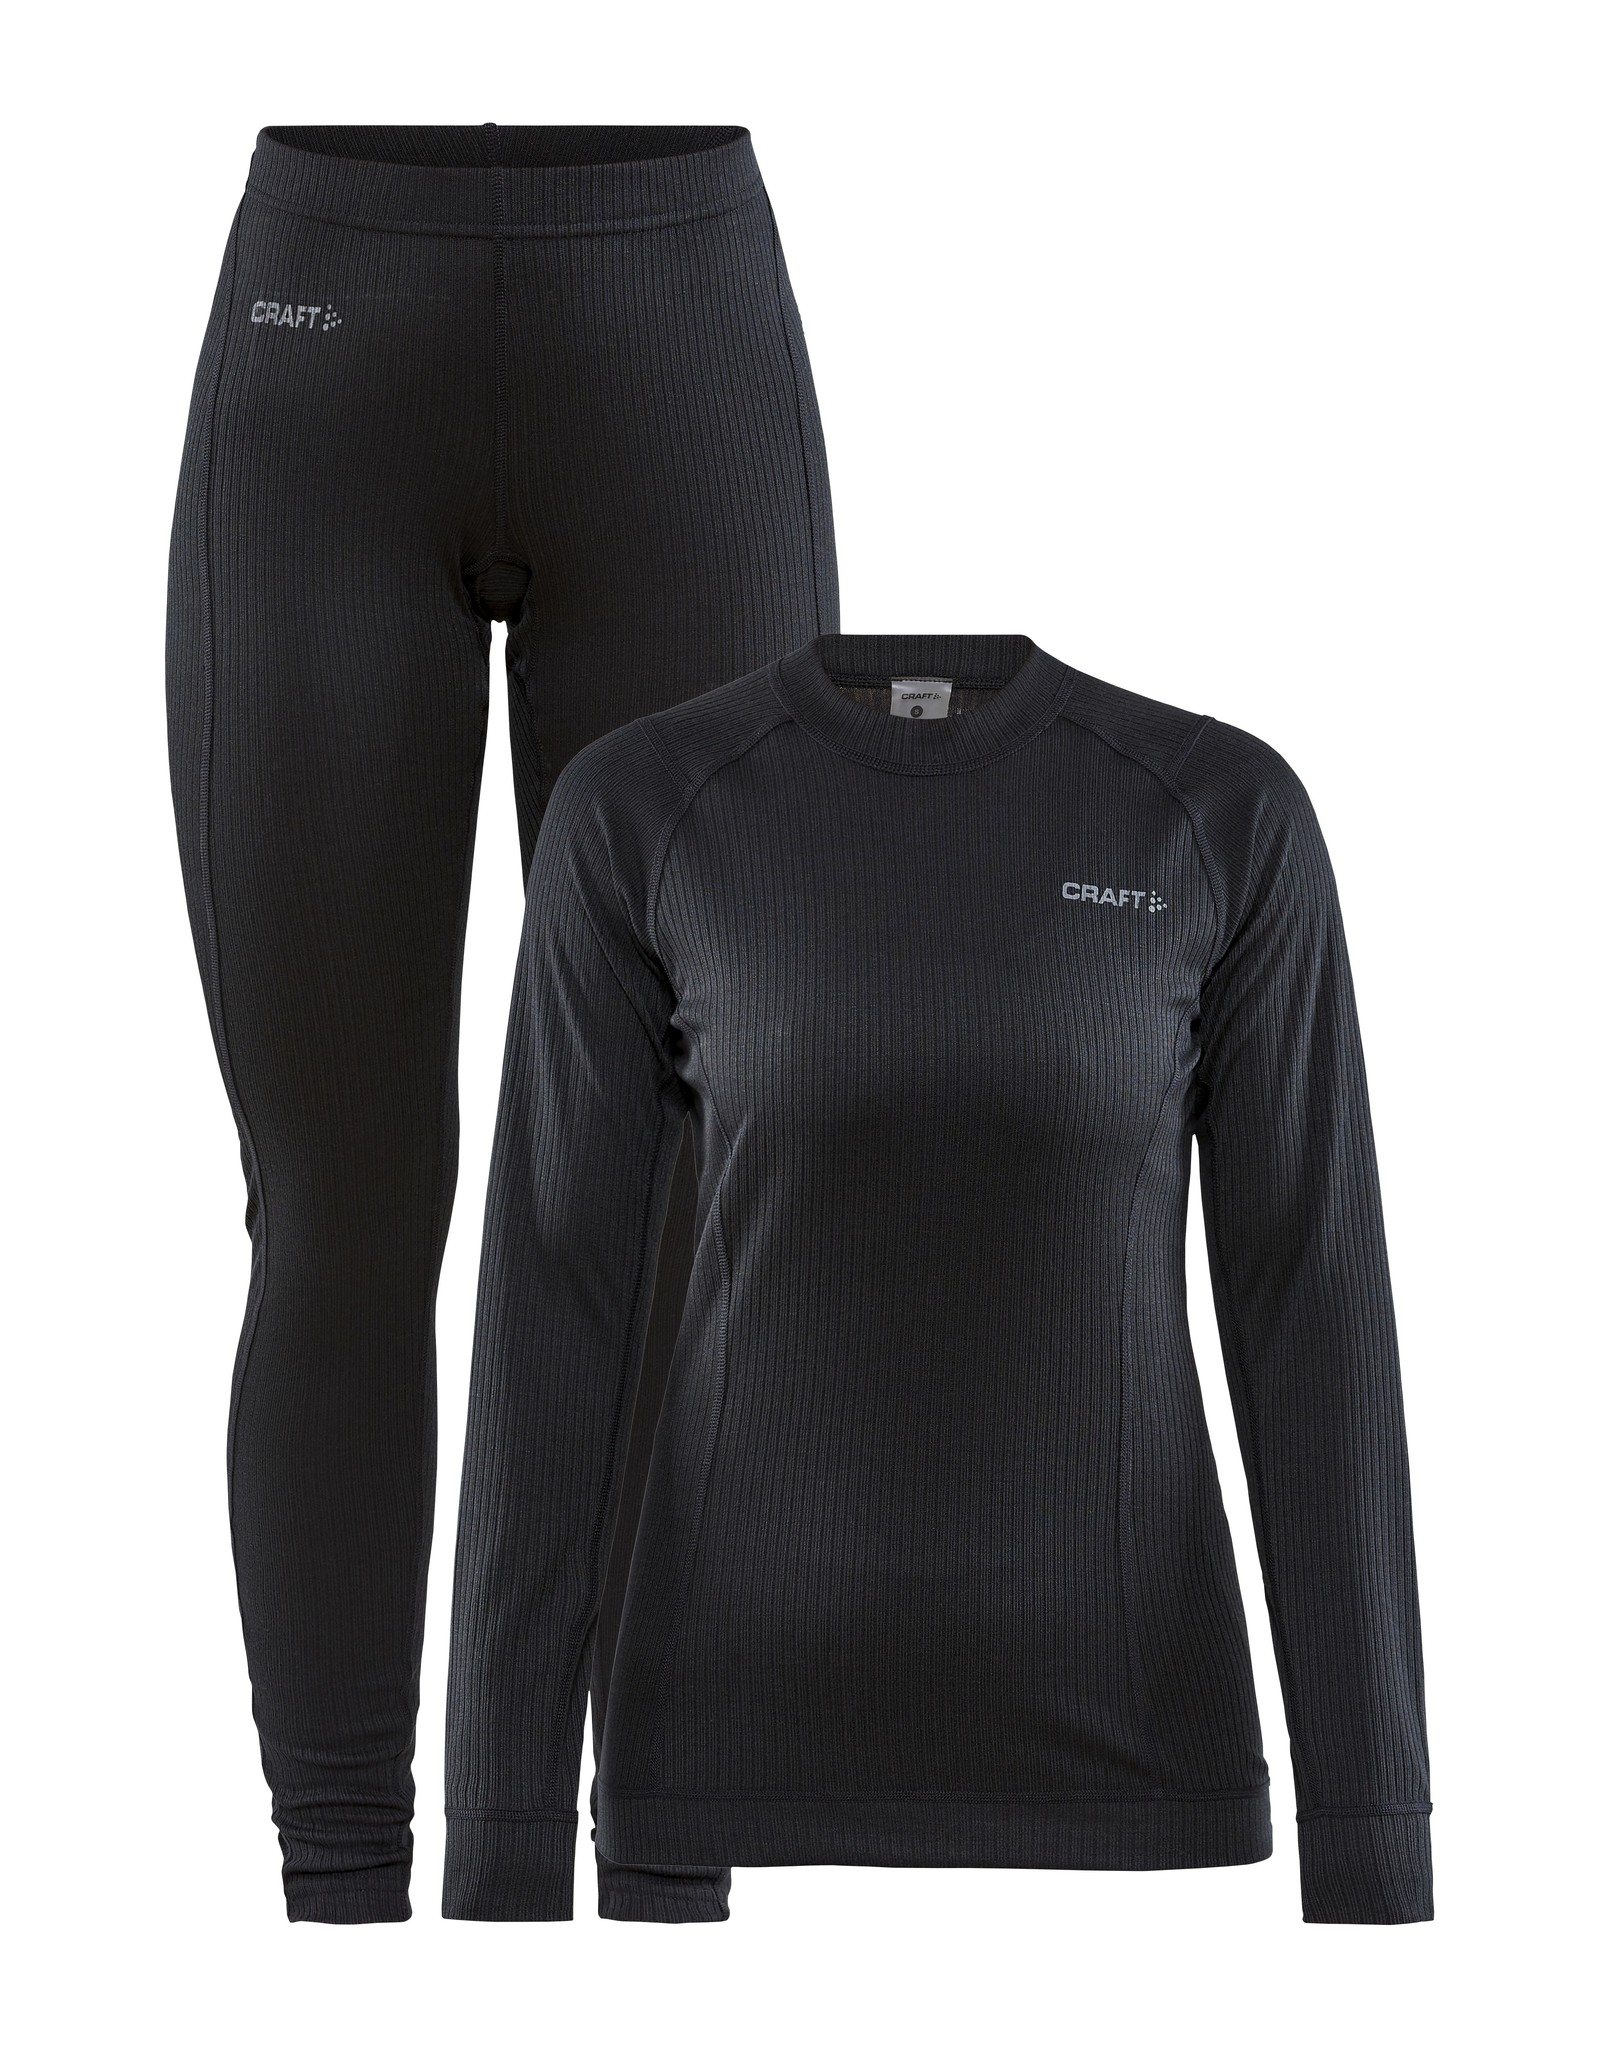 Craft Craft Women's CORE Dry Baselayer Set